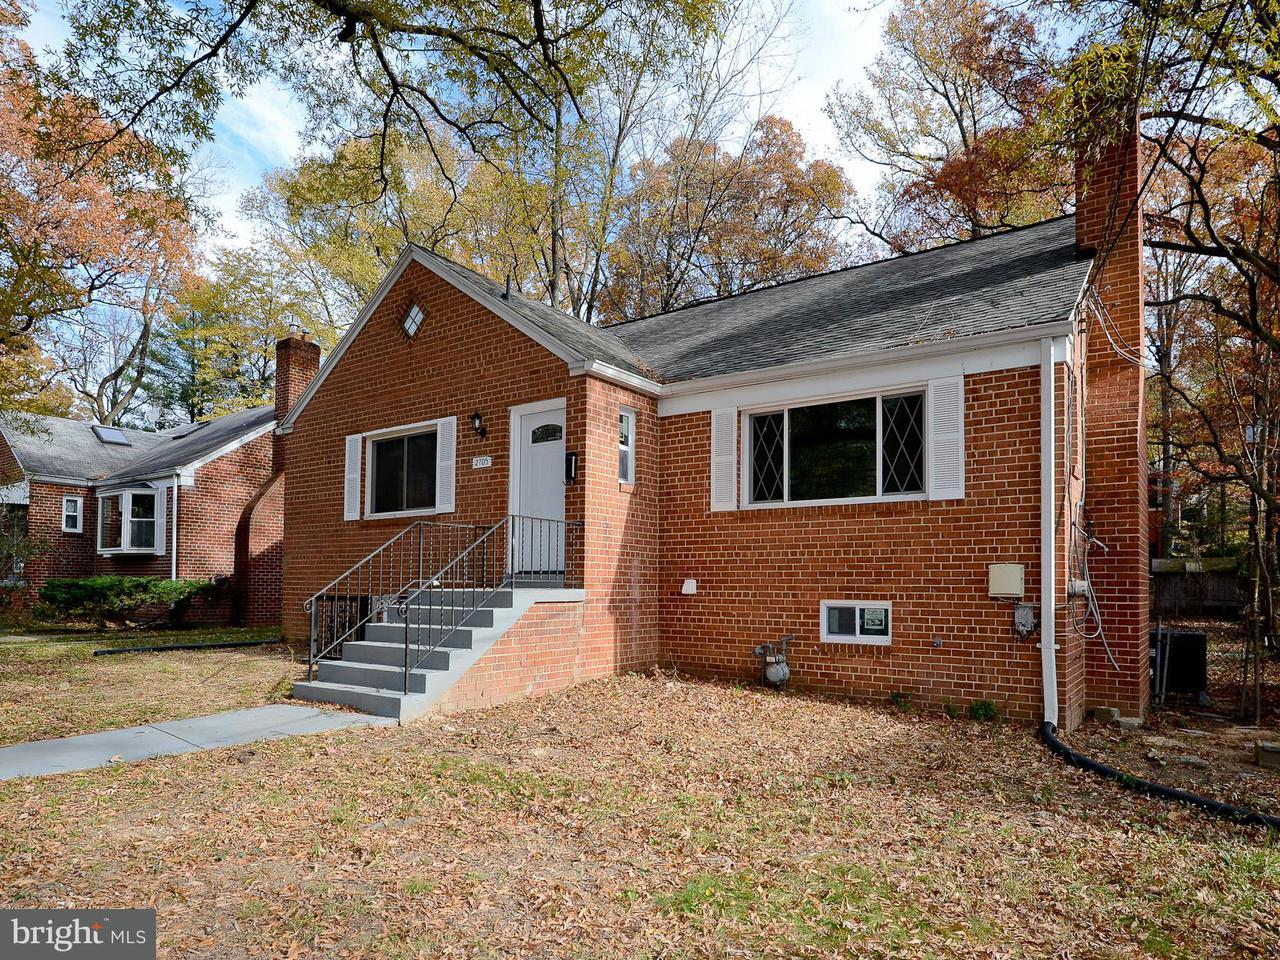 Single Family Home for Sale at 2705 VALLEY WAY 2705 VALLEY WAY Cheverly, Maryland 20785 United States